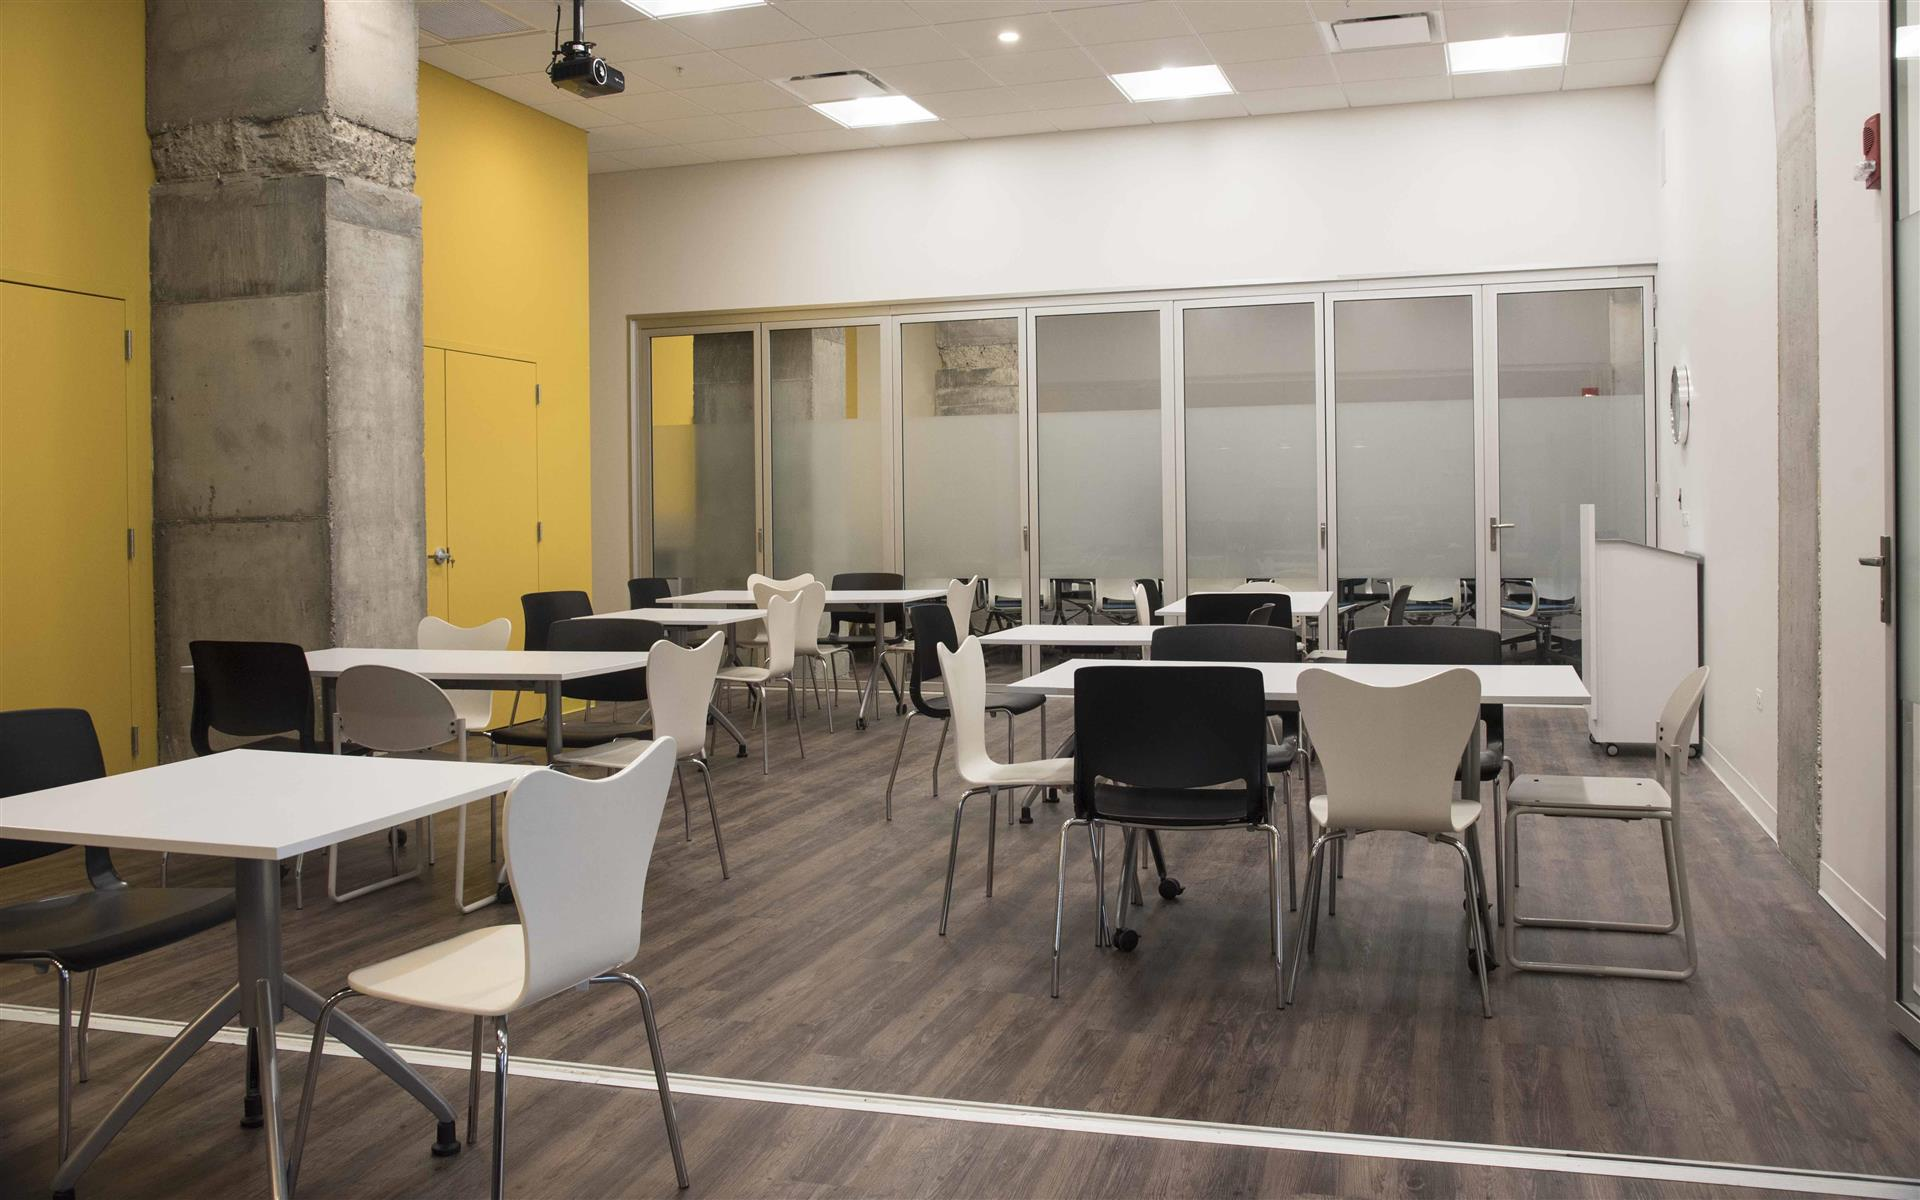 25N Coworking - Arlington Heights - Hub Event Space